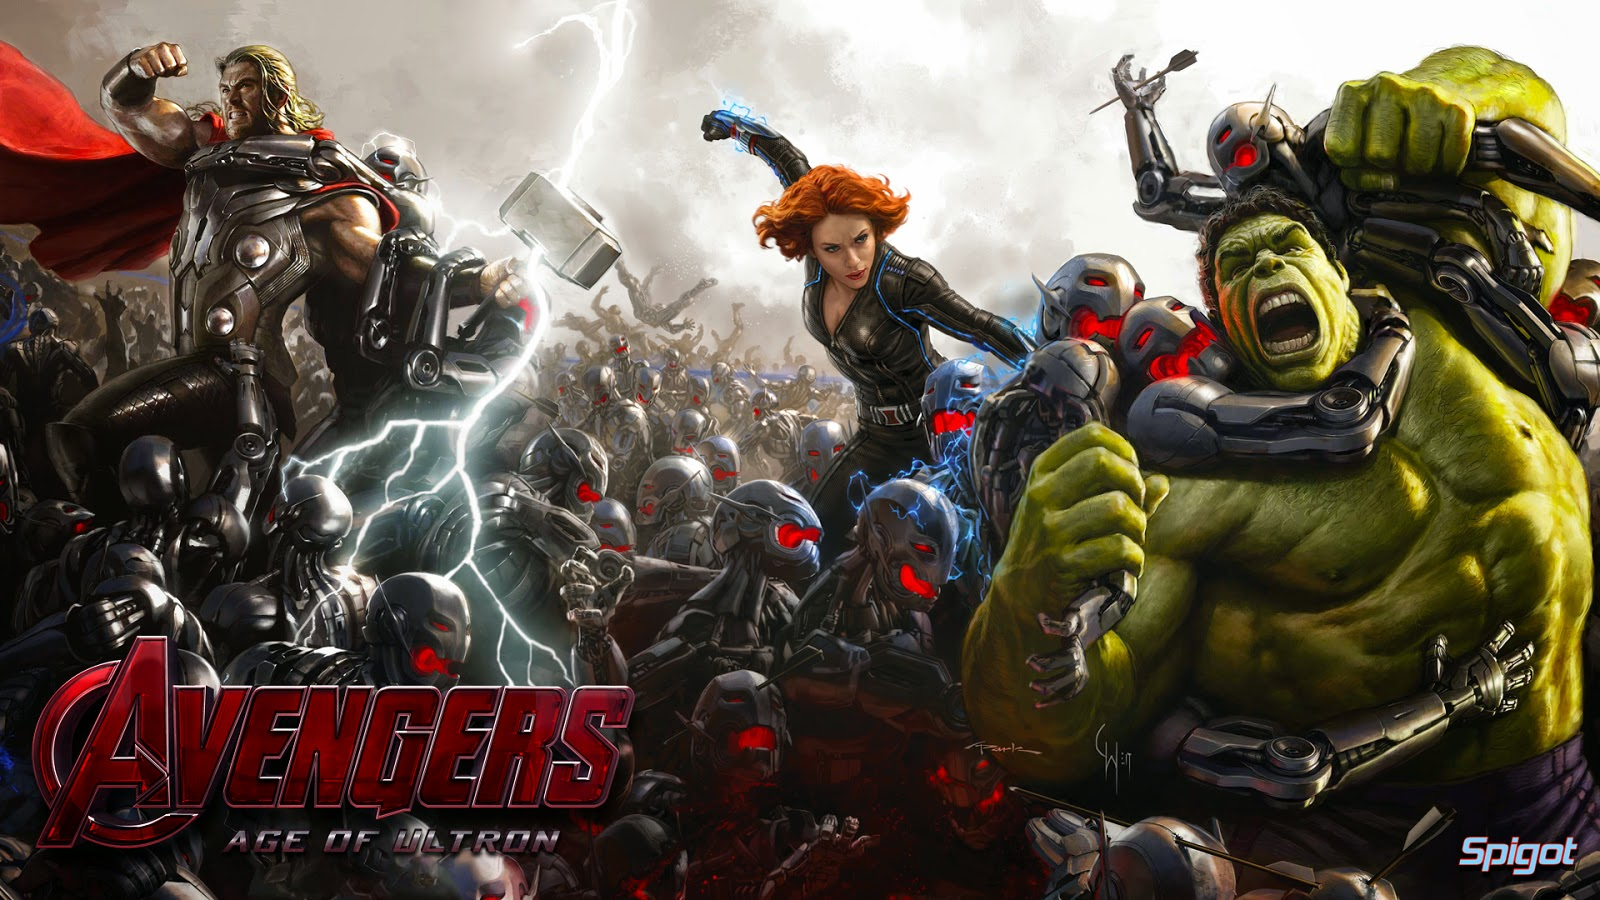 The Avengers Age of Ultron Wallpapers SantaBanta - ultron in avengers age of ultron wallpapers